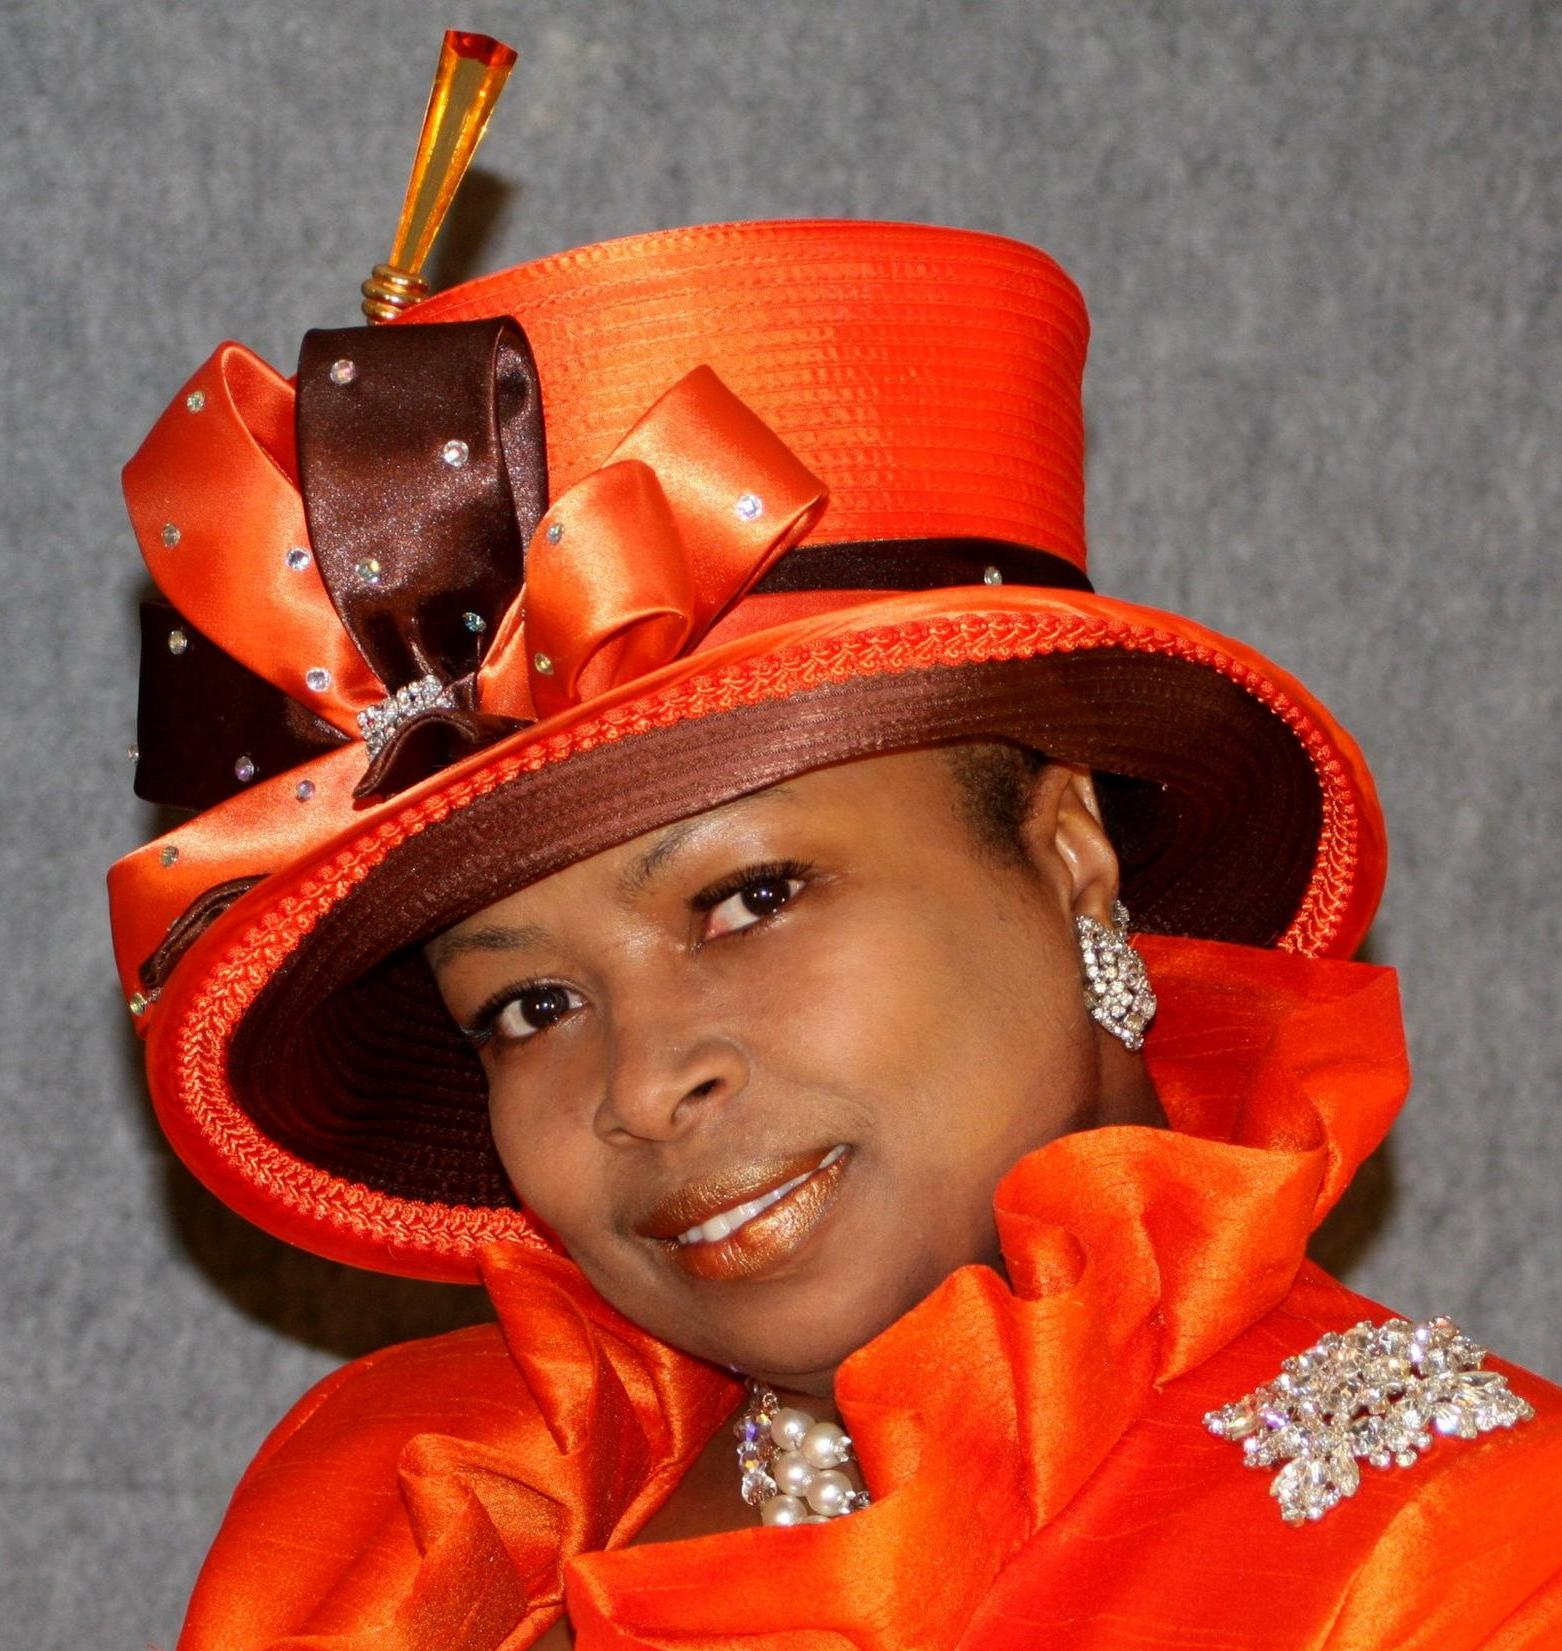 Bruce R. Watkins Cultural Heritage Center & Museum to Celebrate African American Women in Church Hats